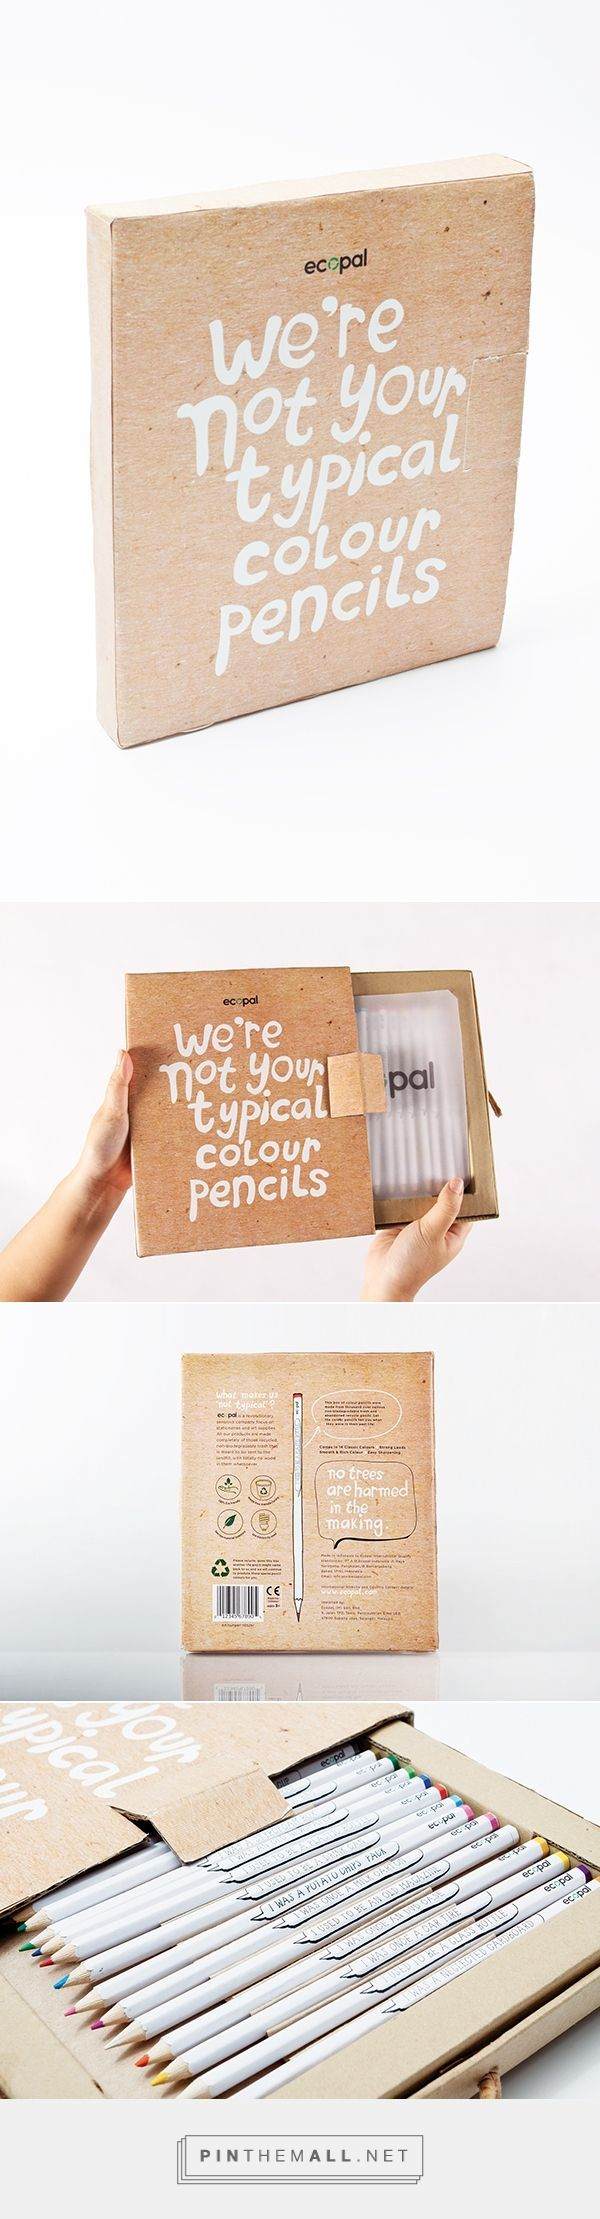 Ecopal / Ecopal is a self-made brand of wood-free colour pencils.